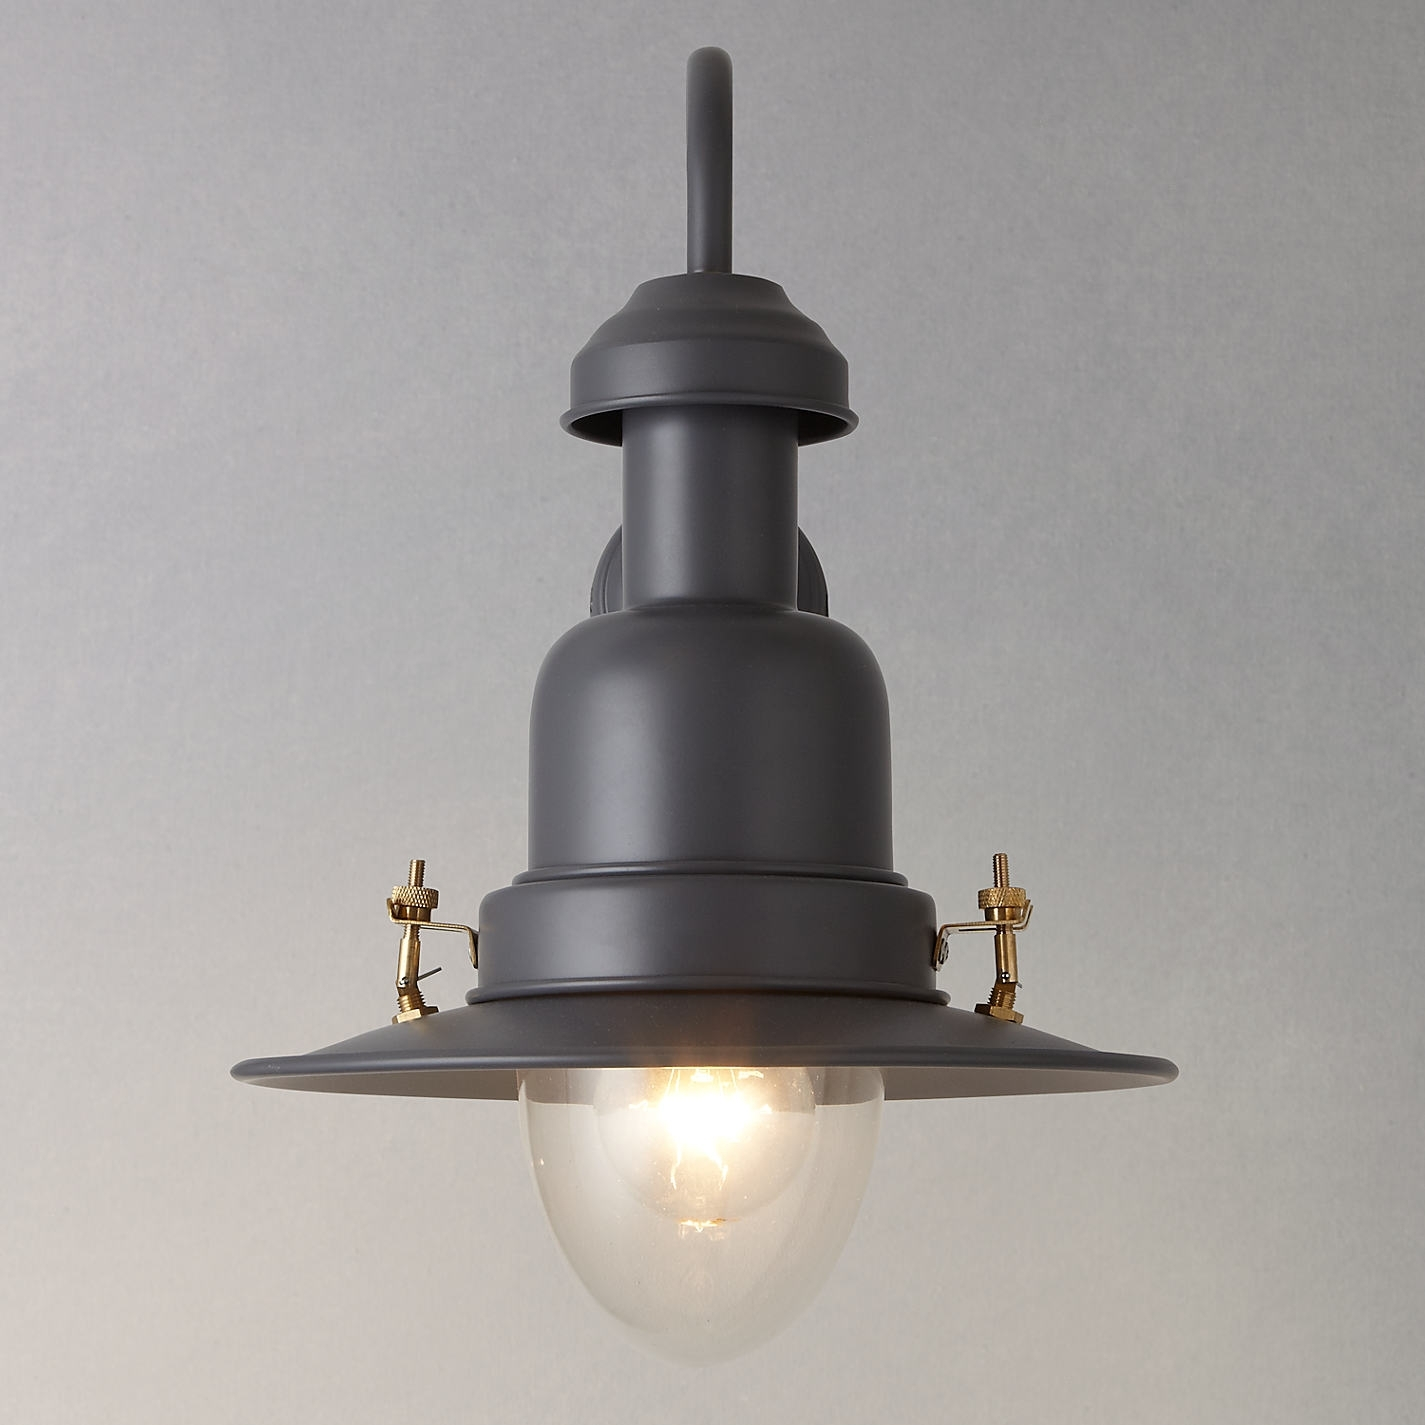 Fresh Amazing Wall Lights John Lewis Sam89 #15416 Pertaining To John Lewis Outdoor Ceiling Lights (View 10 of 15)